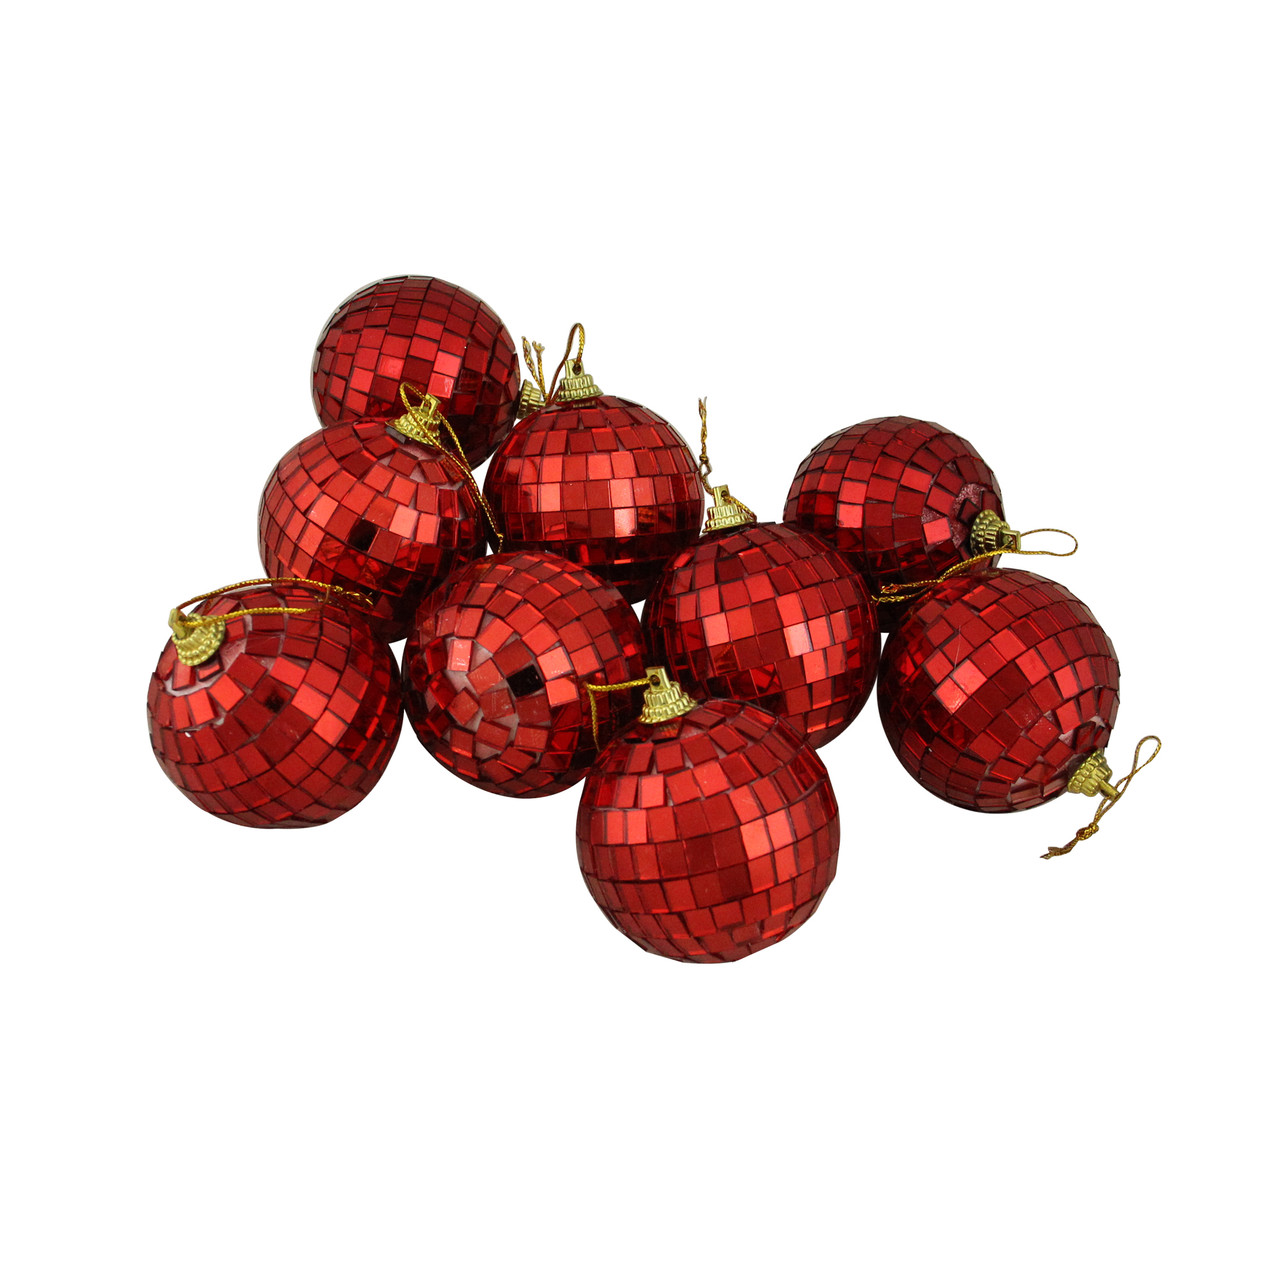 Christmas Disco Ball.9ct Red Hot Mirrored Glass Disco Ball Christmas Ornaments 2 5 60mm 32756939